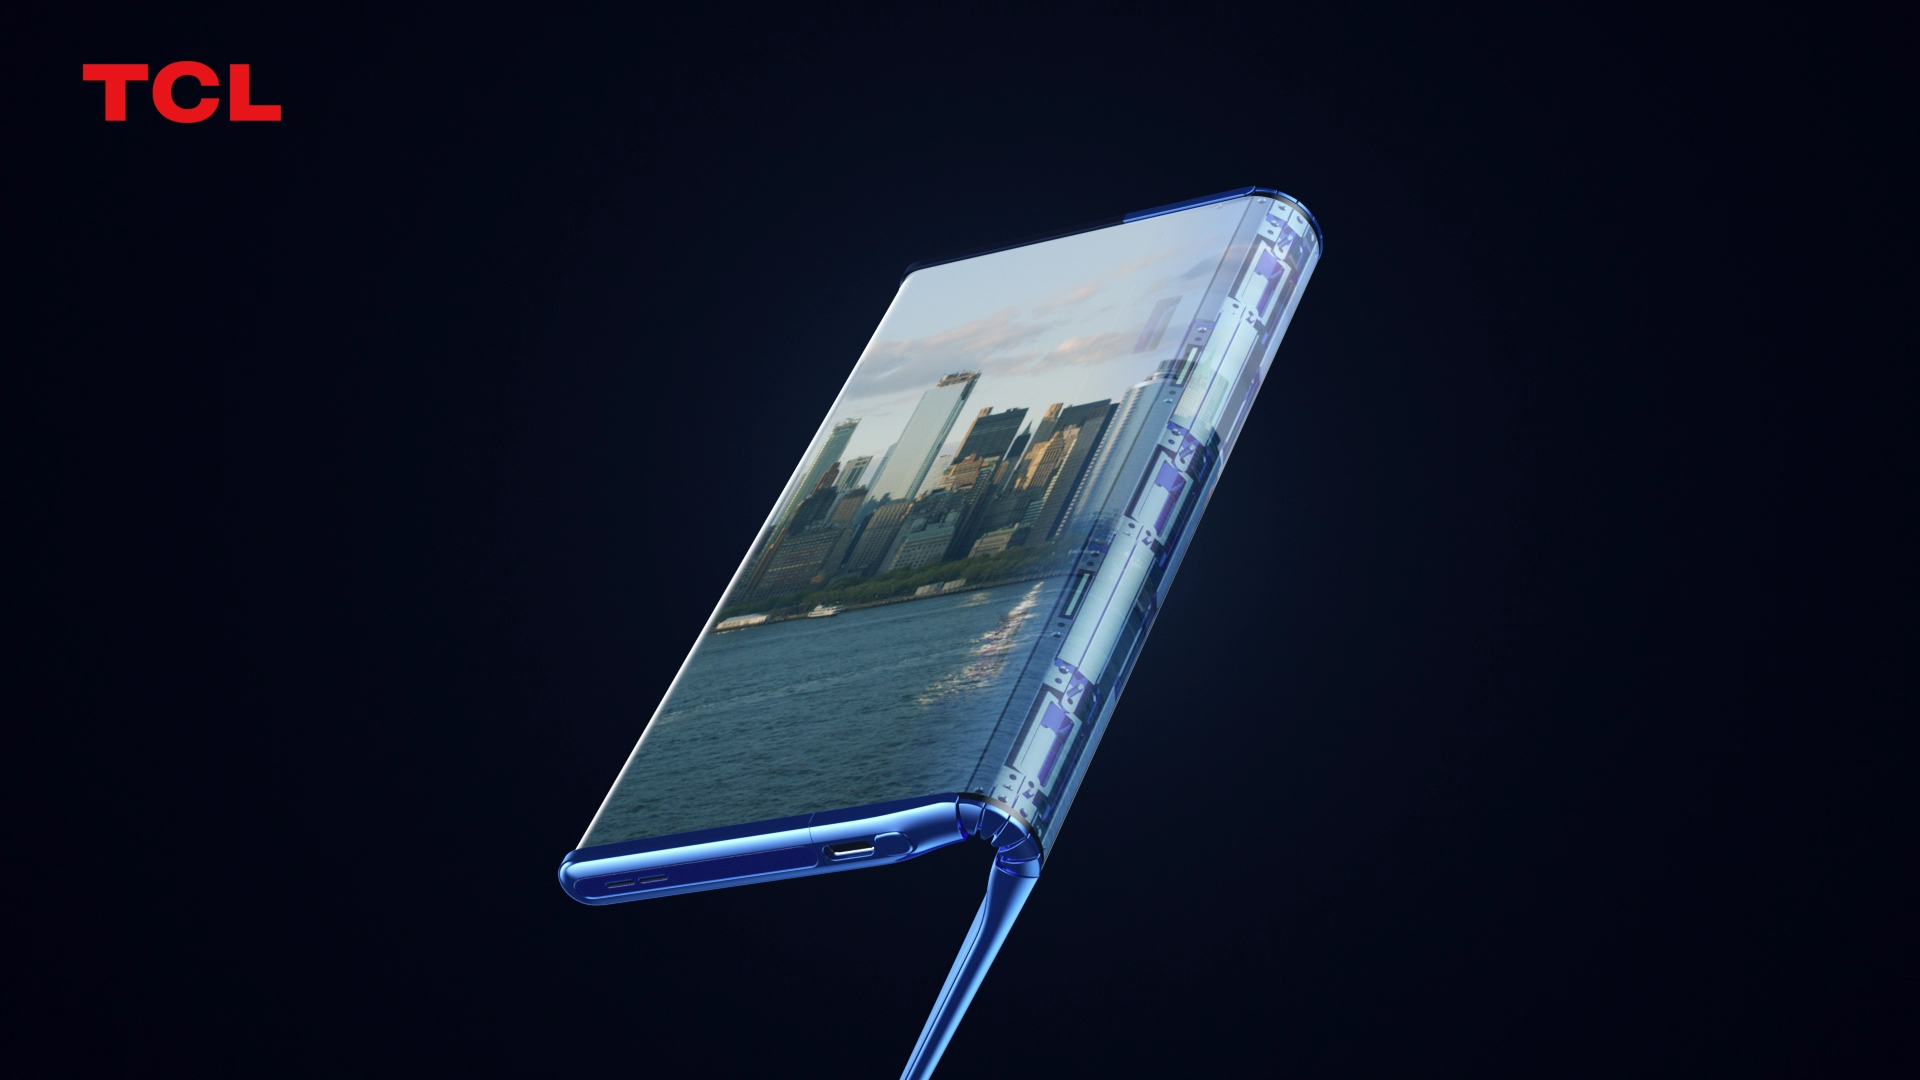 TCL Fold n Roll concept smartphone